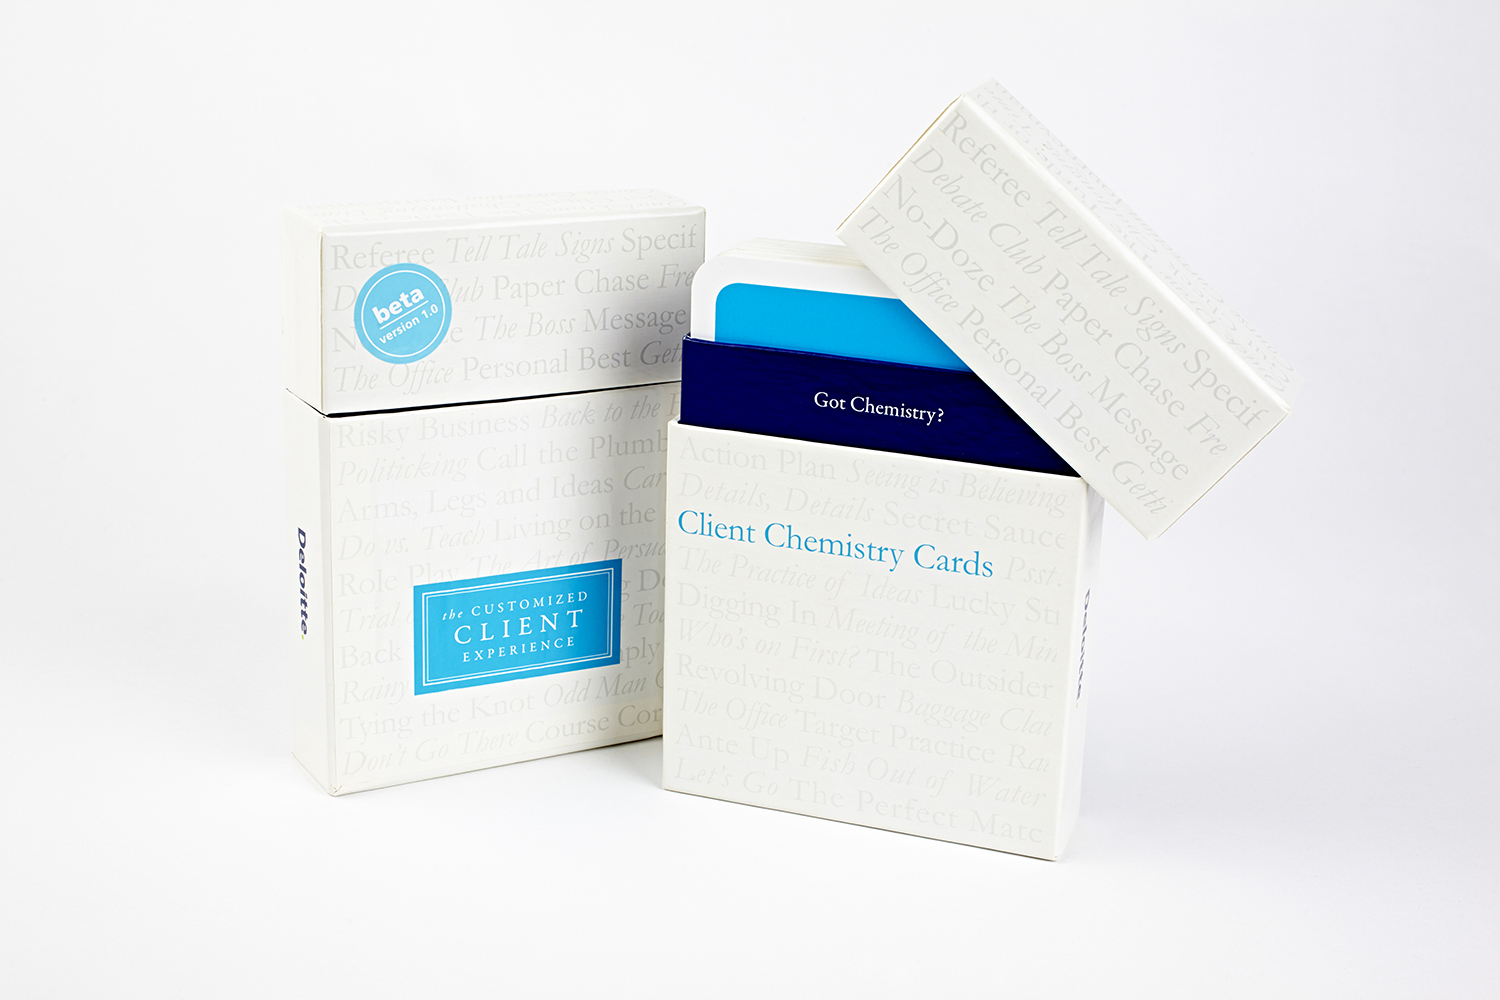 Client Chemistry Cards